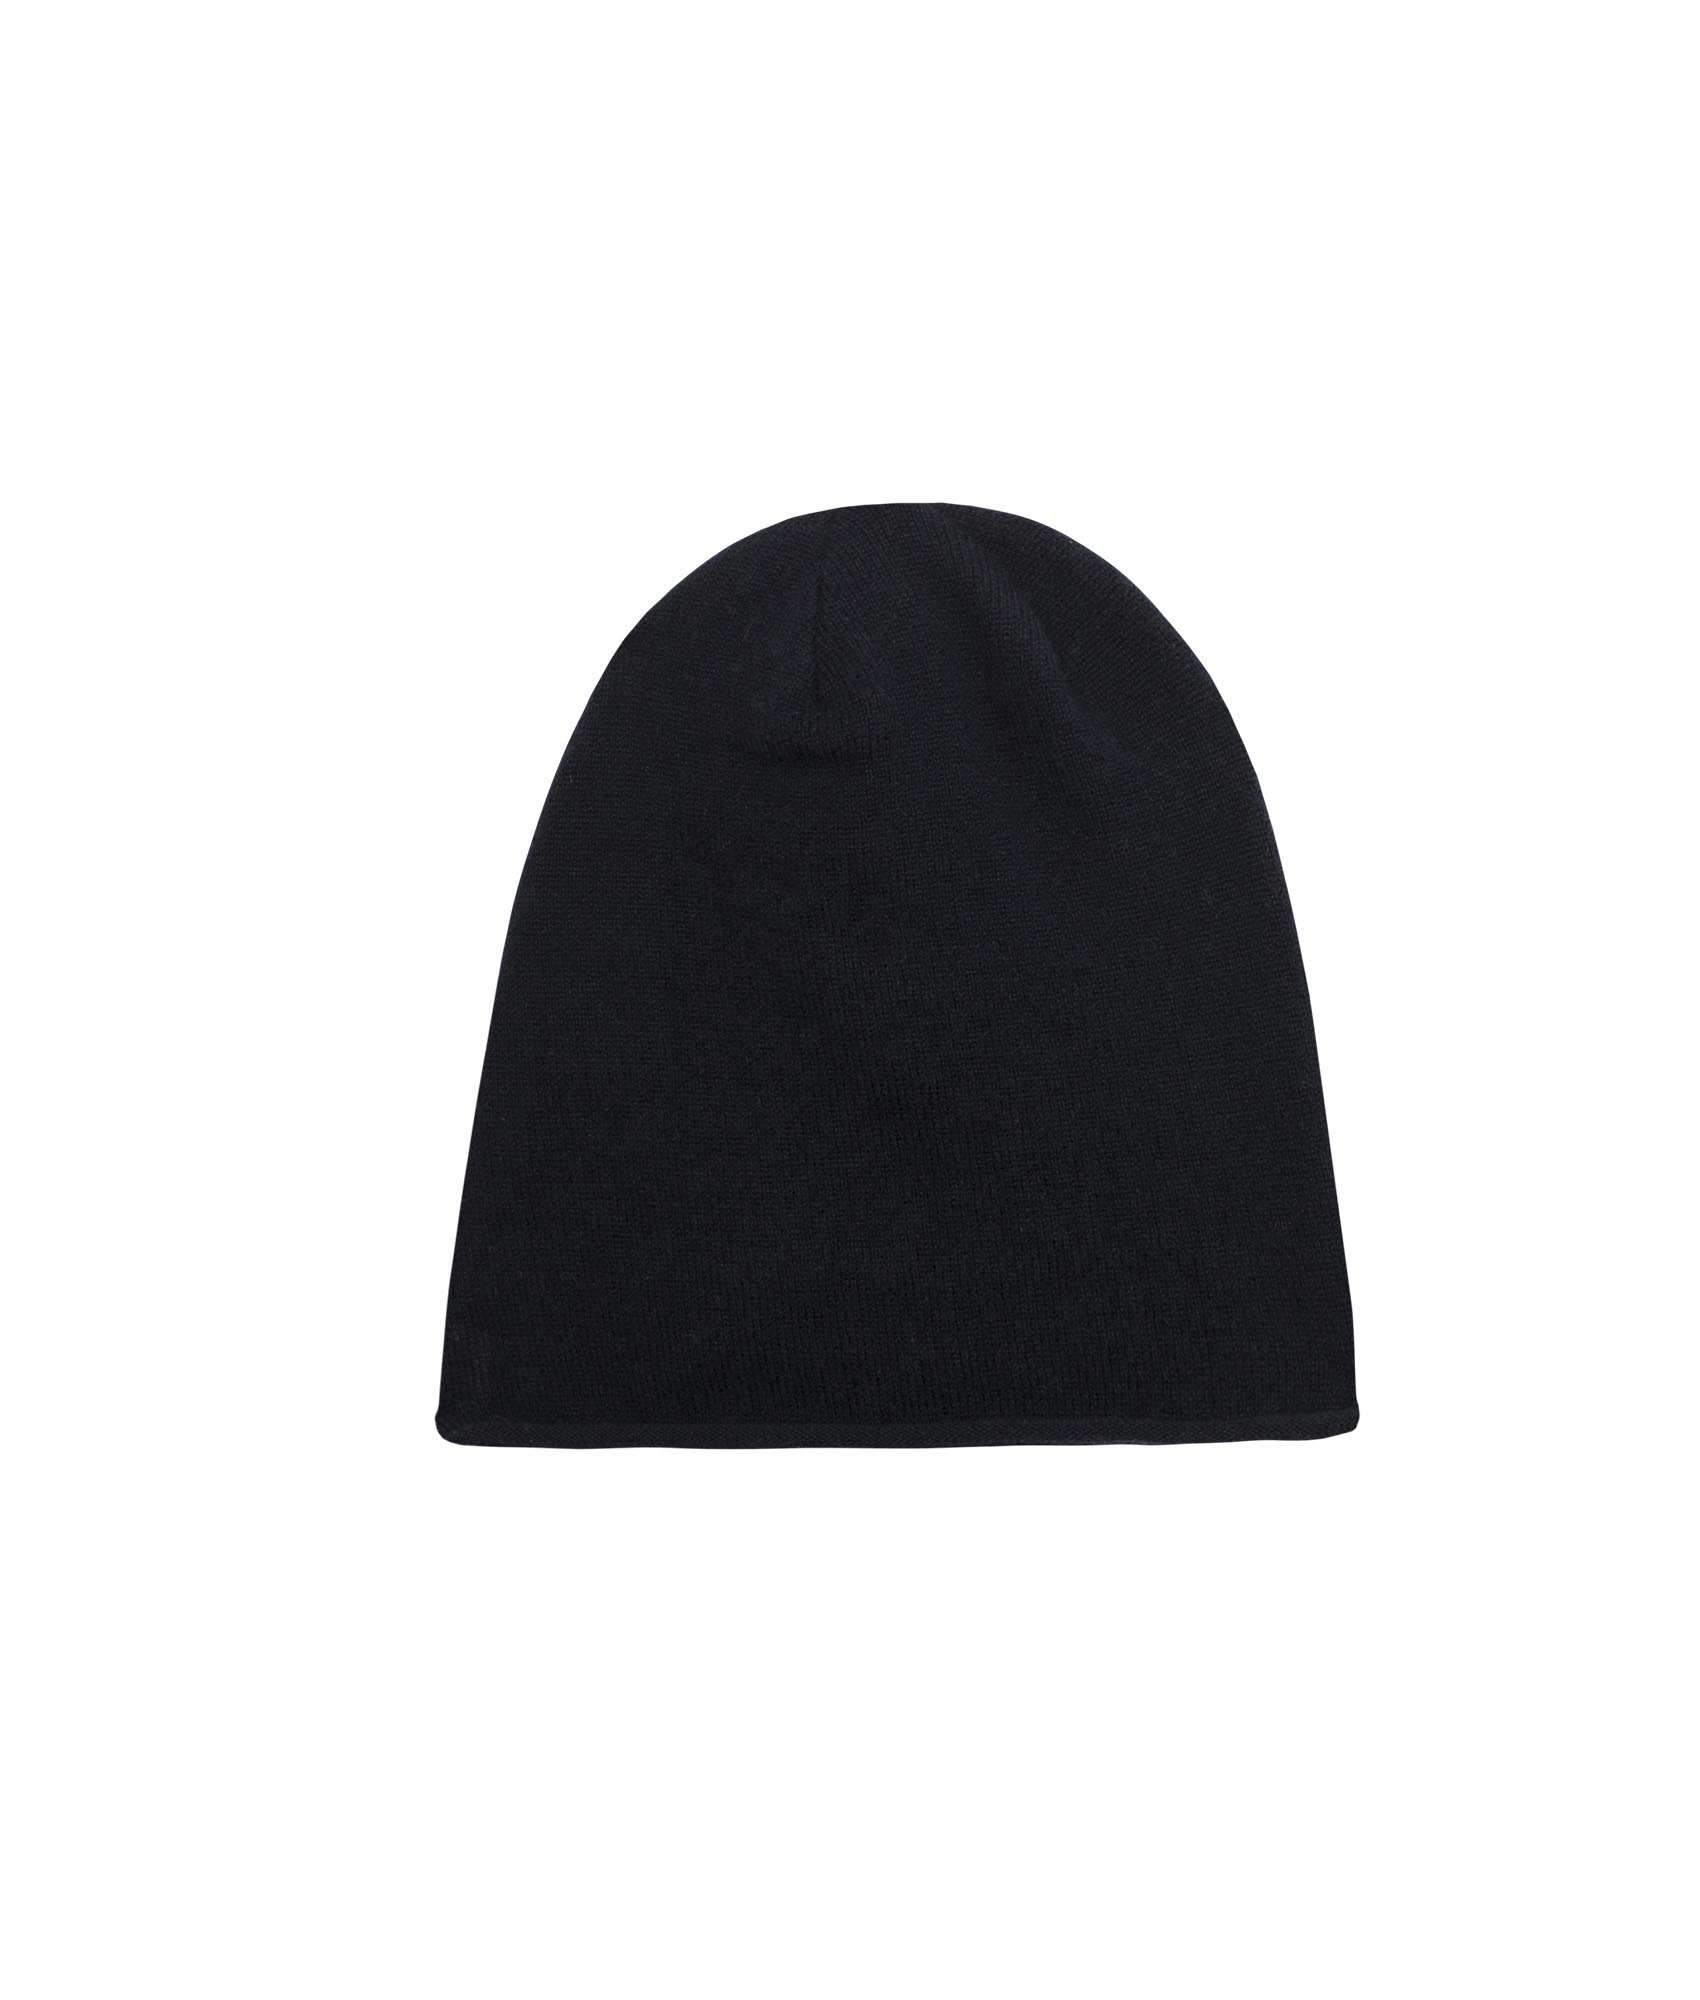 JENNIFER JOANOU New York | Fulton | Roll Edge Beanie Hat